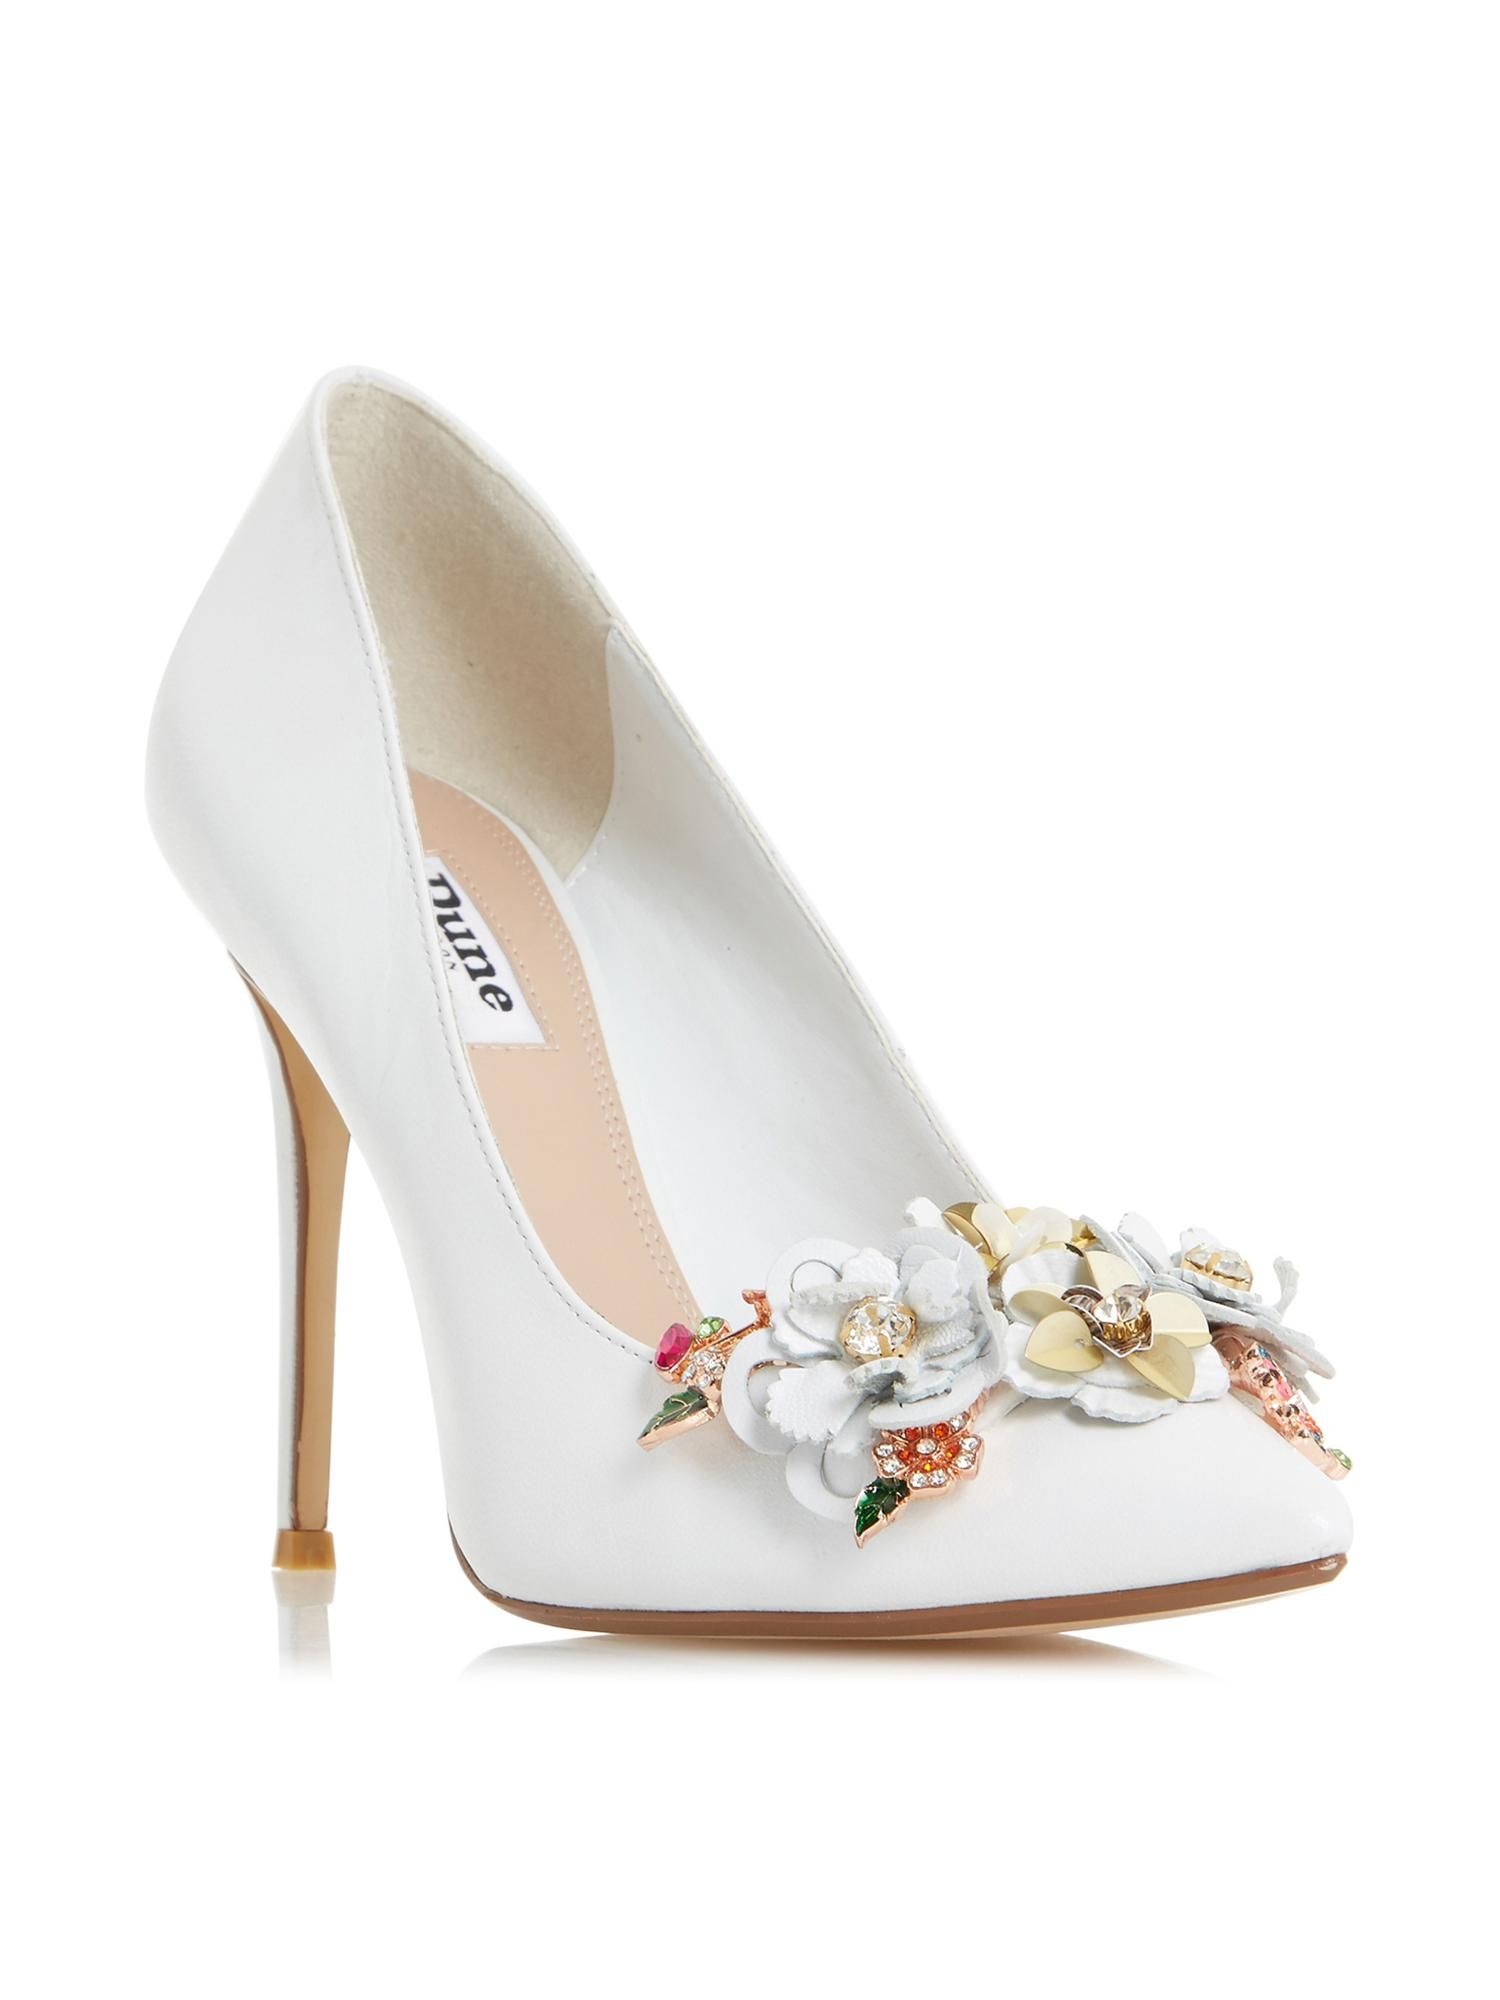 f662080b746 Buy your Dune Azalea Floral Detail Court Shoe online now at House of  Fraser. Why